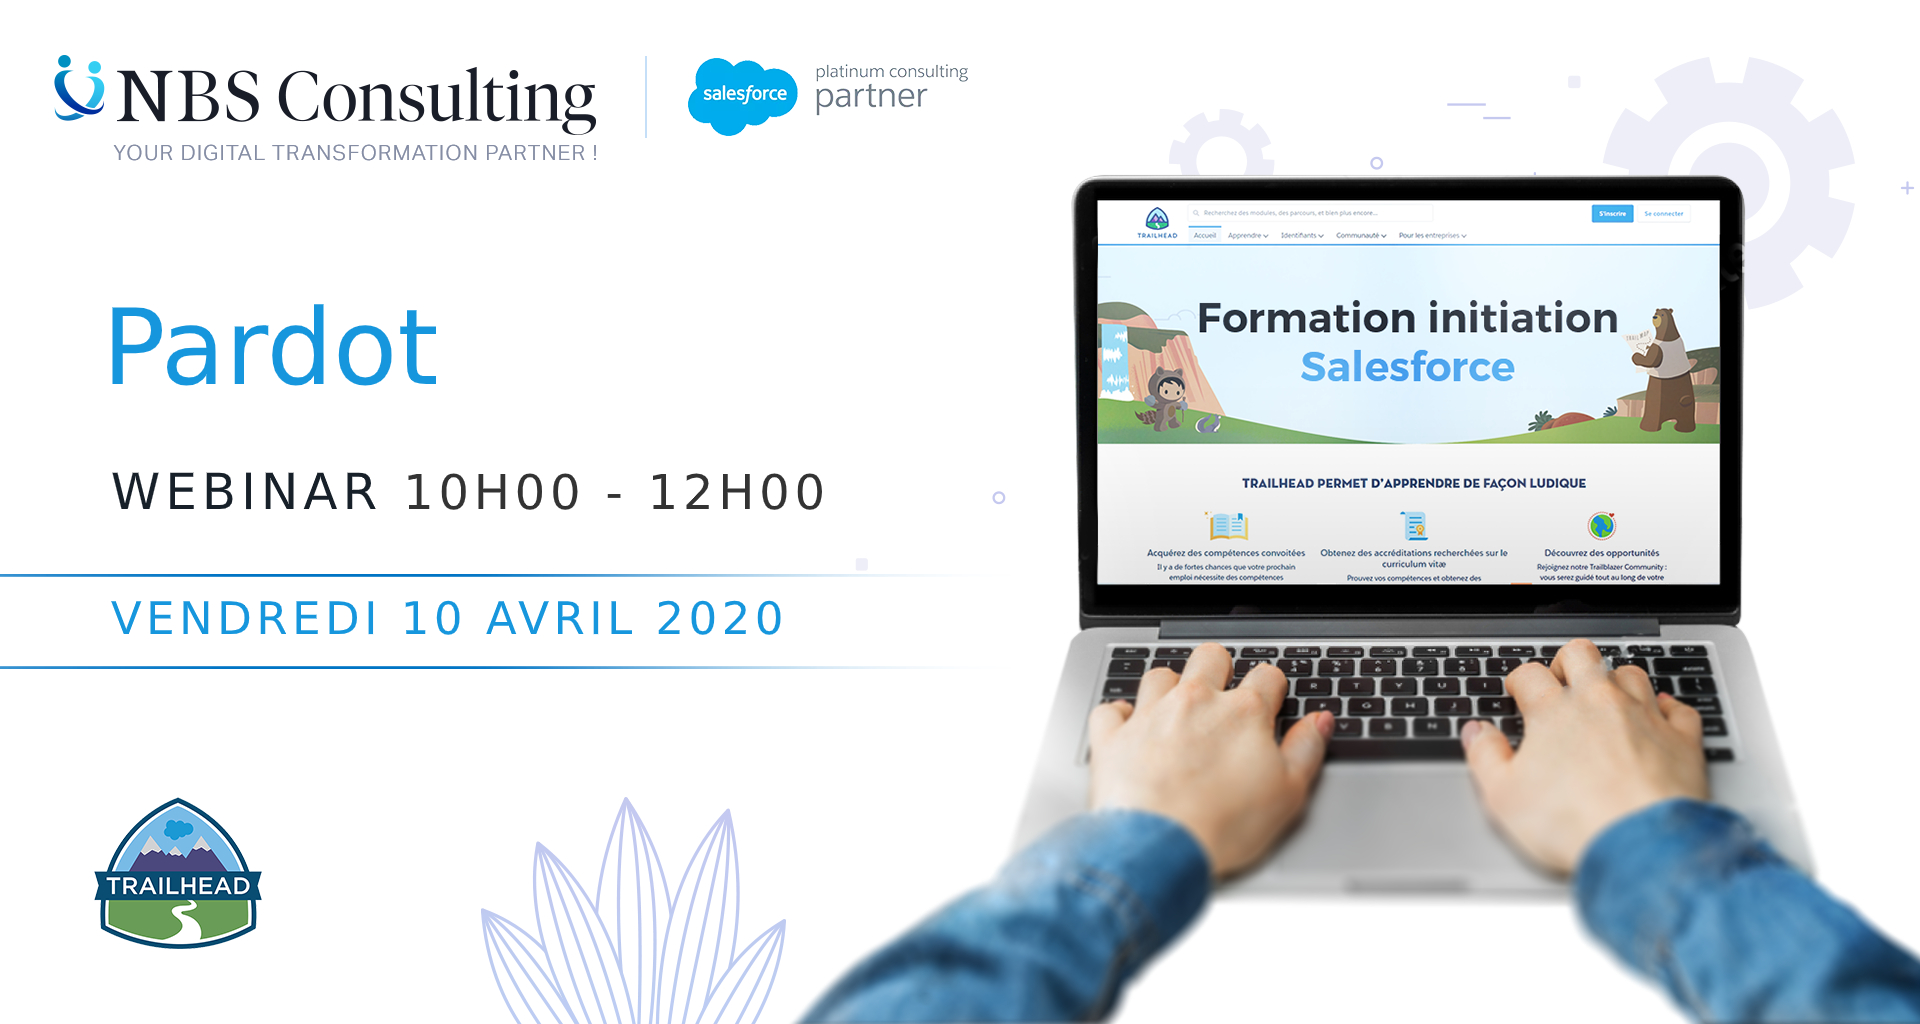 Marketing automation, outil d'automatisation marketing business to business, pardot vs marketing cloud, salesforce, get to learn pardot essentials, pardot assets and automation tools, exemple d'implémentation en événementiel.